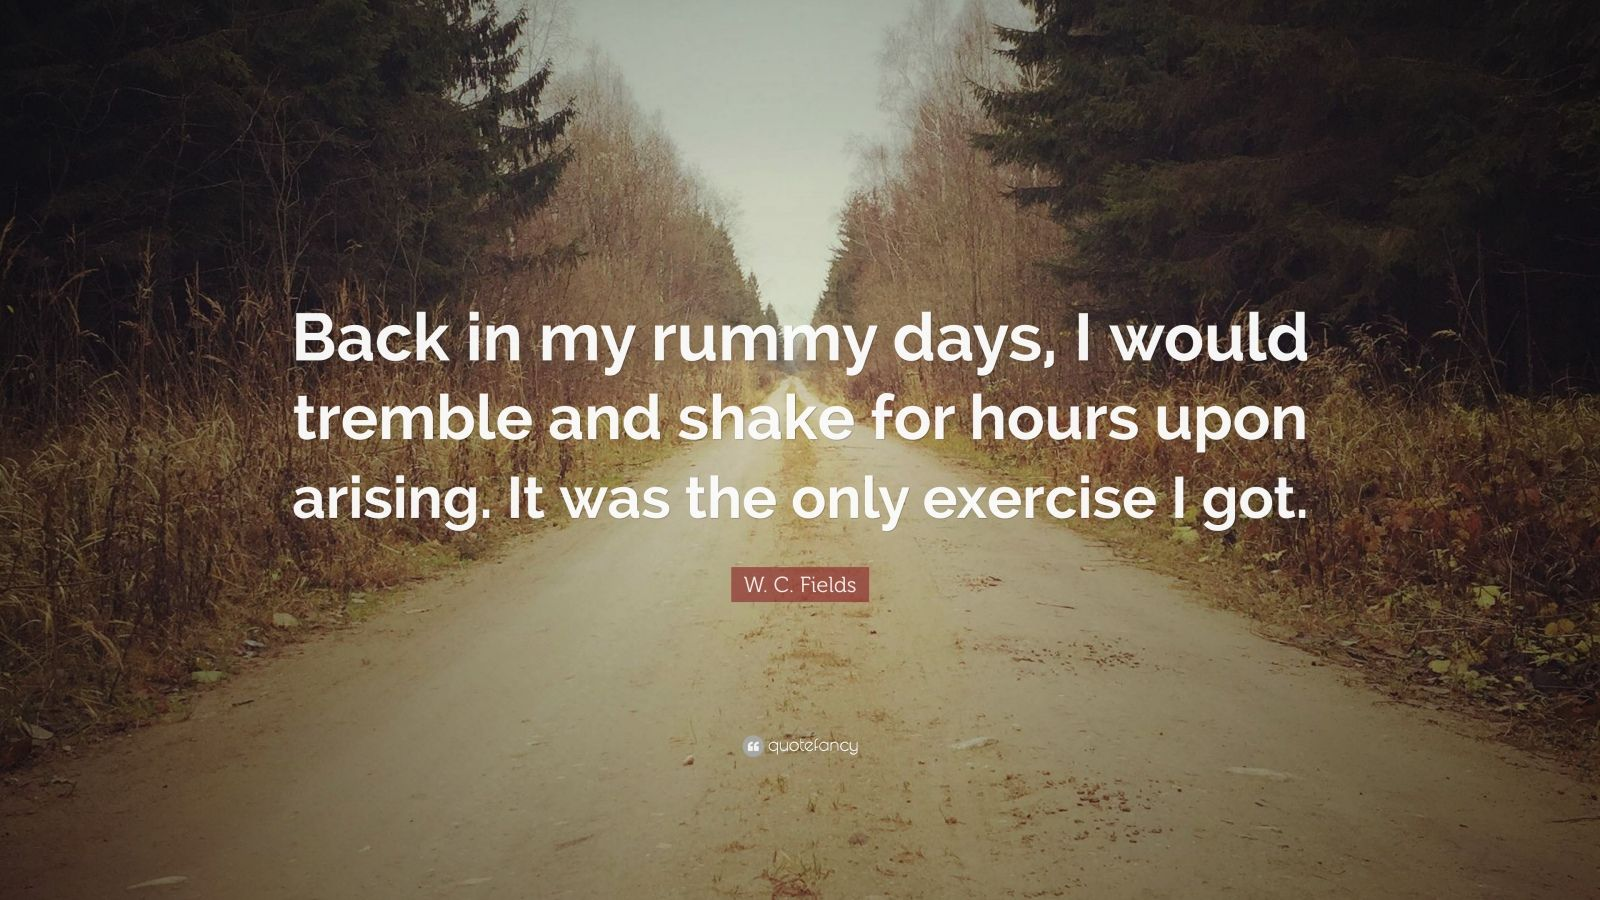 """W. C. Fields Quote: """"Back in my rummy days, I would tremble and shake for hours upon arising. It was the only exercise I got."""""""